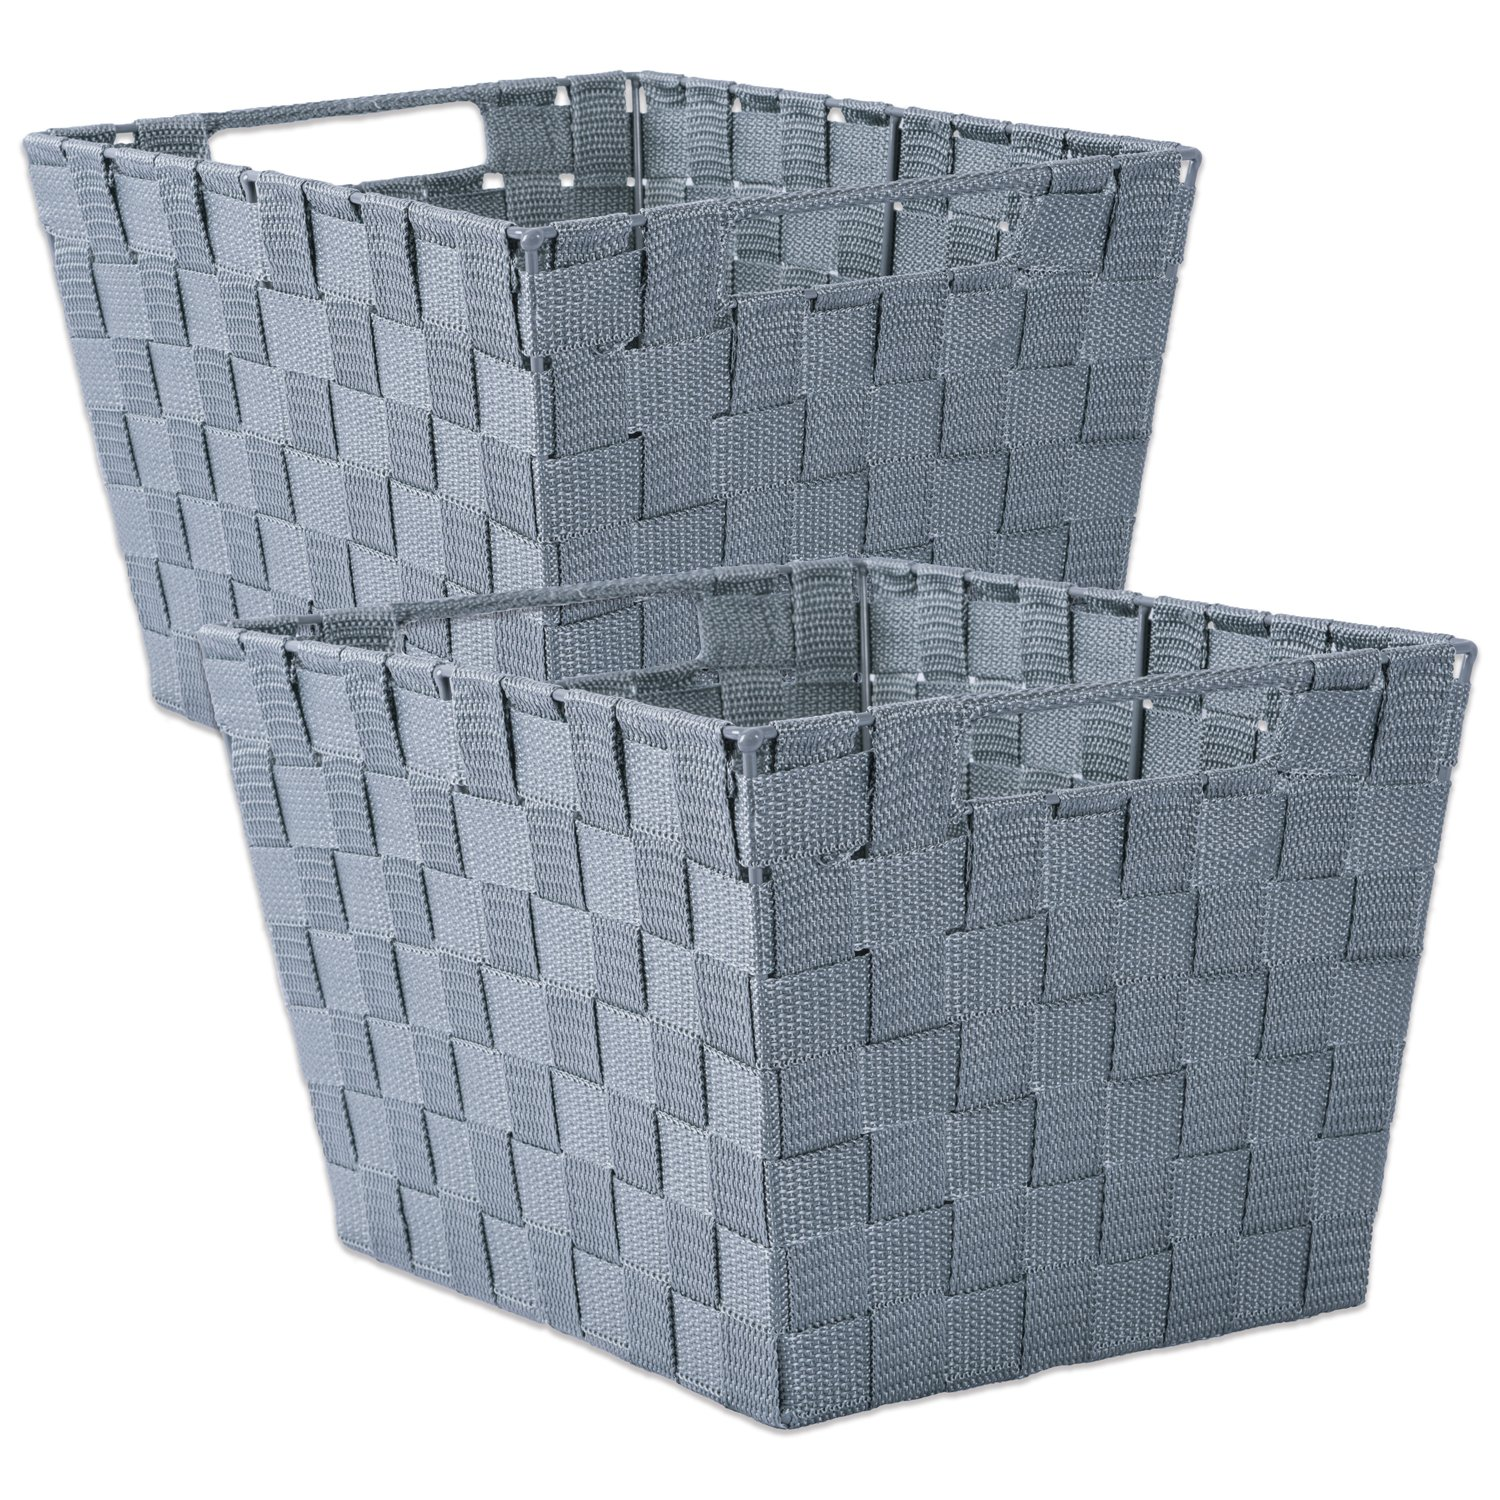 DII Durable Trapezoid Woven Nylon Storage Bin or Basket for Organizing Your Home, Office, or Closets (Basket - 12x10x8'') Gray - Set of 2 by DII